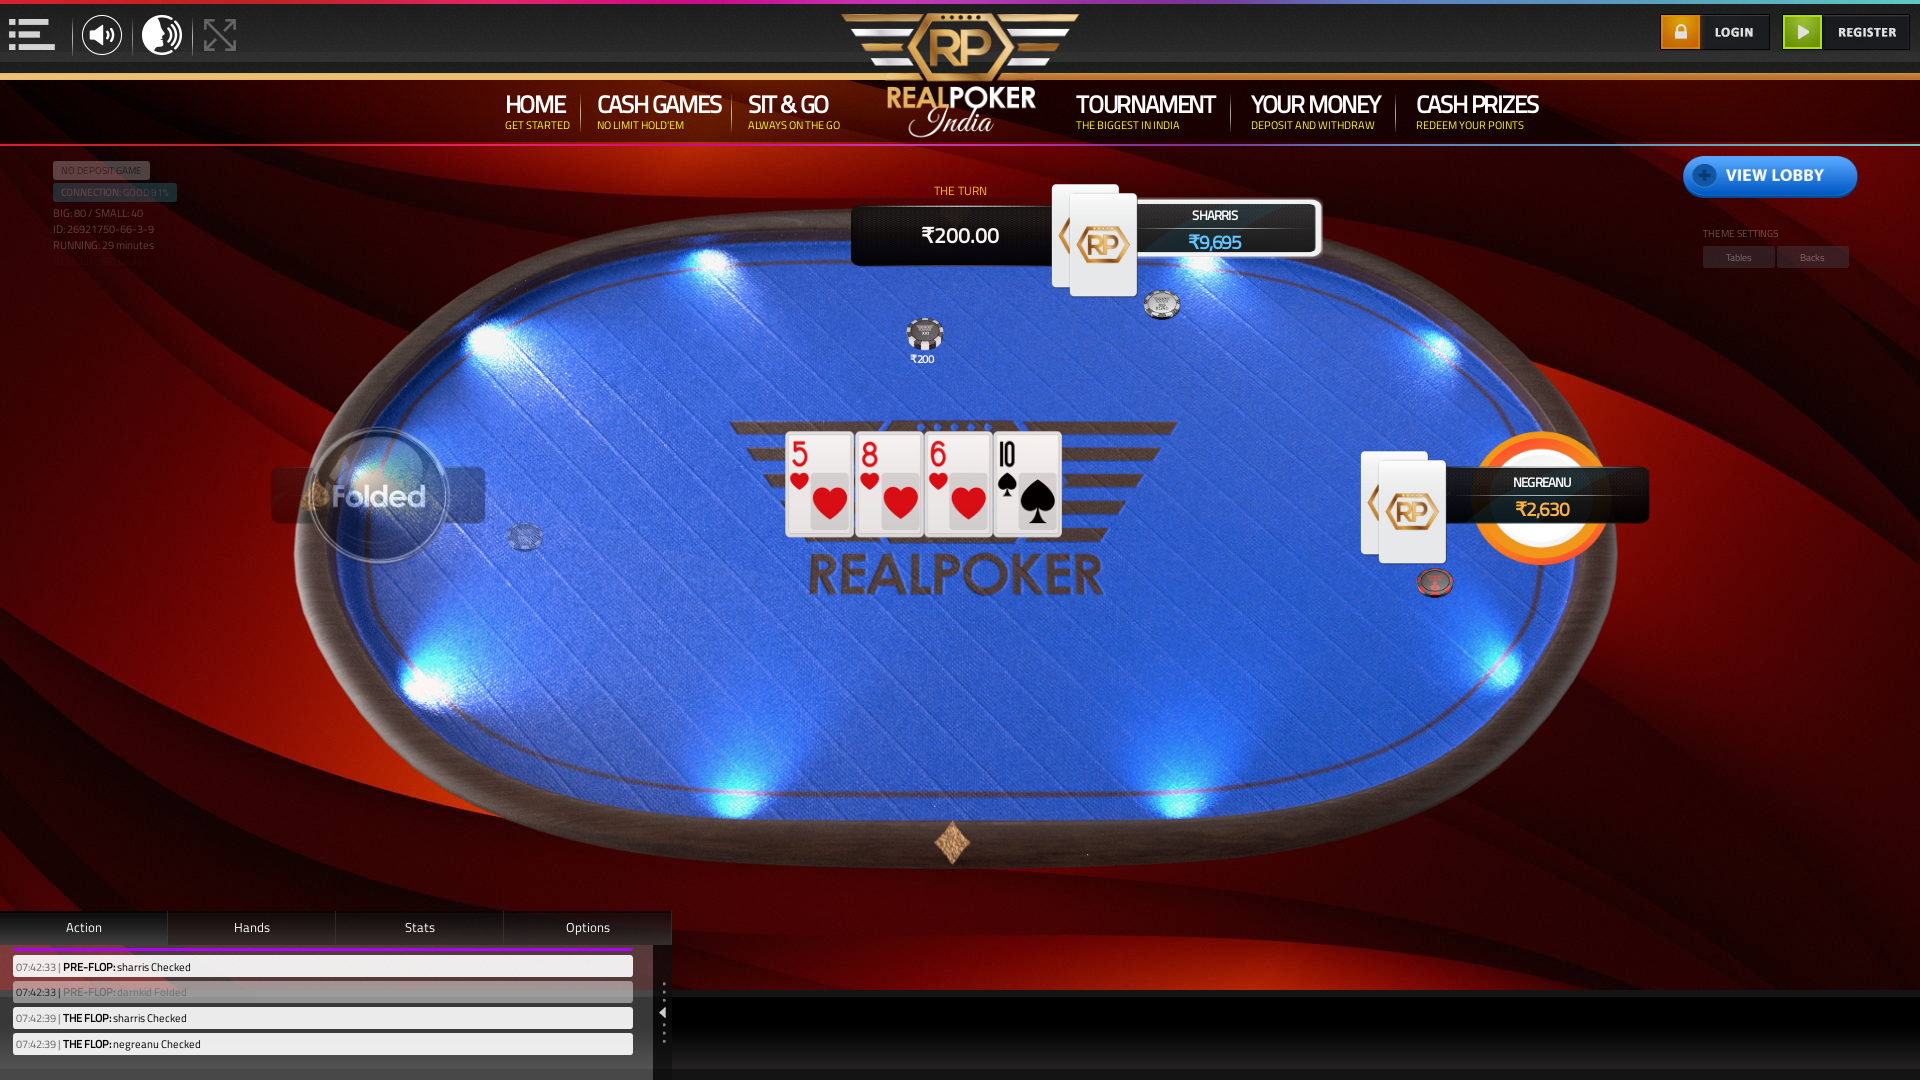 10 player poker in the 29th minute